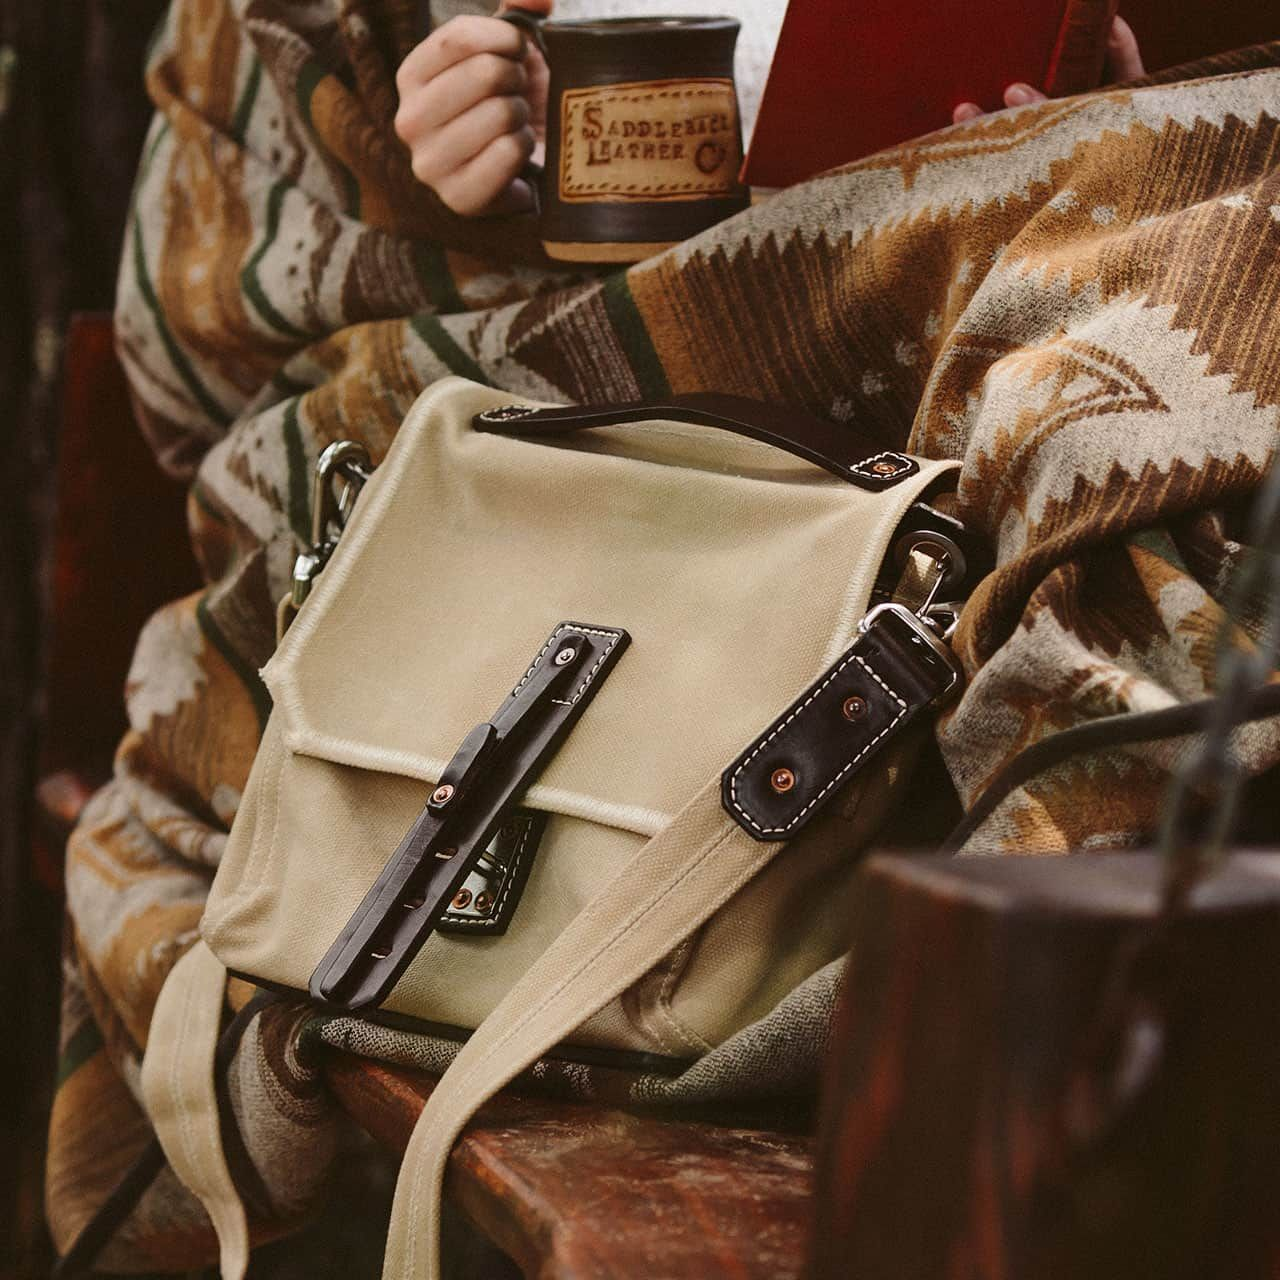 Indiana Gear Bag in Sand sitting next to a book reading coffee wielding woman